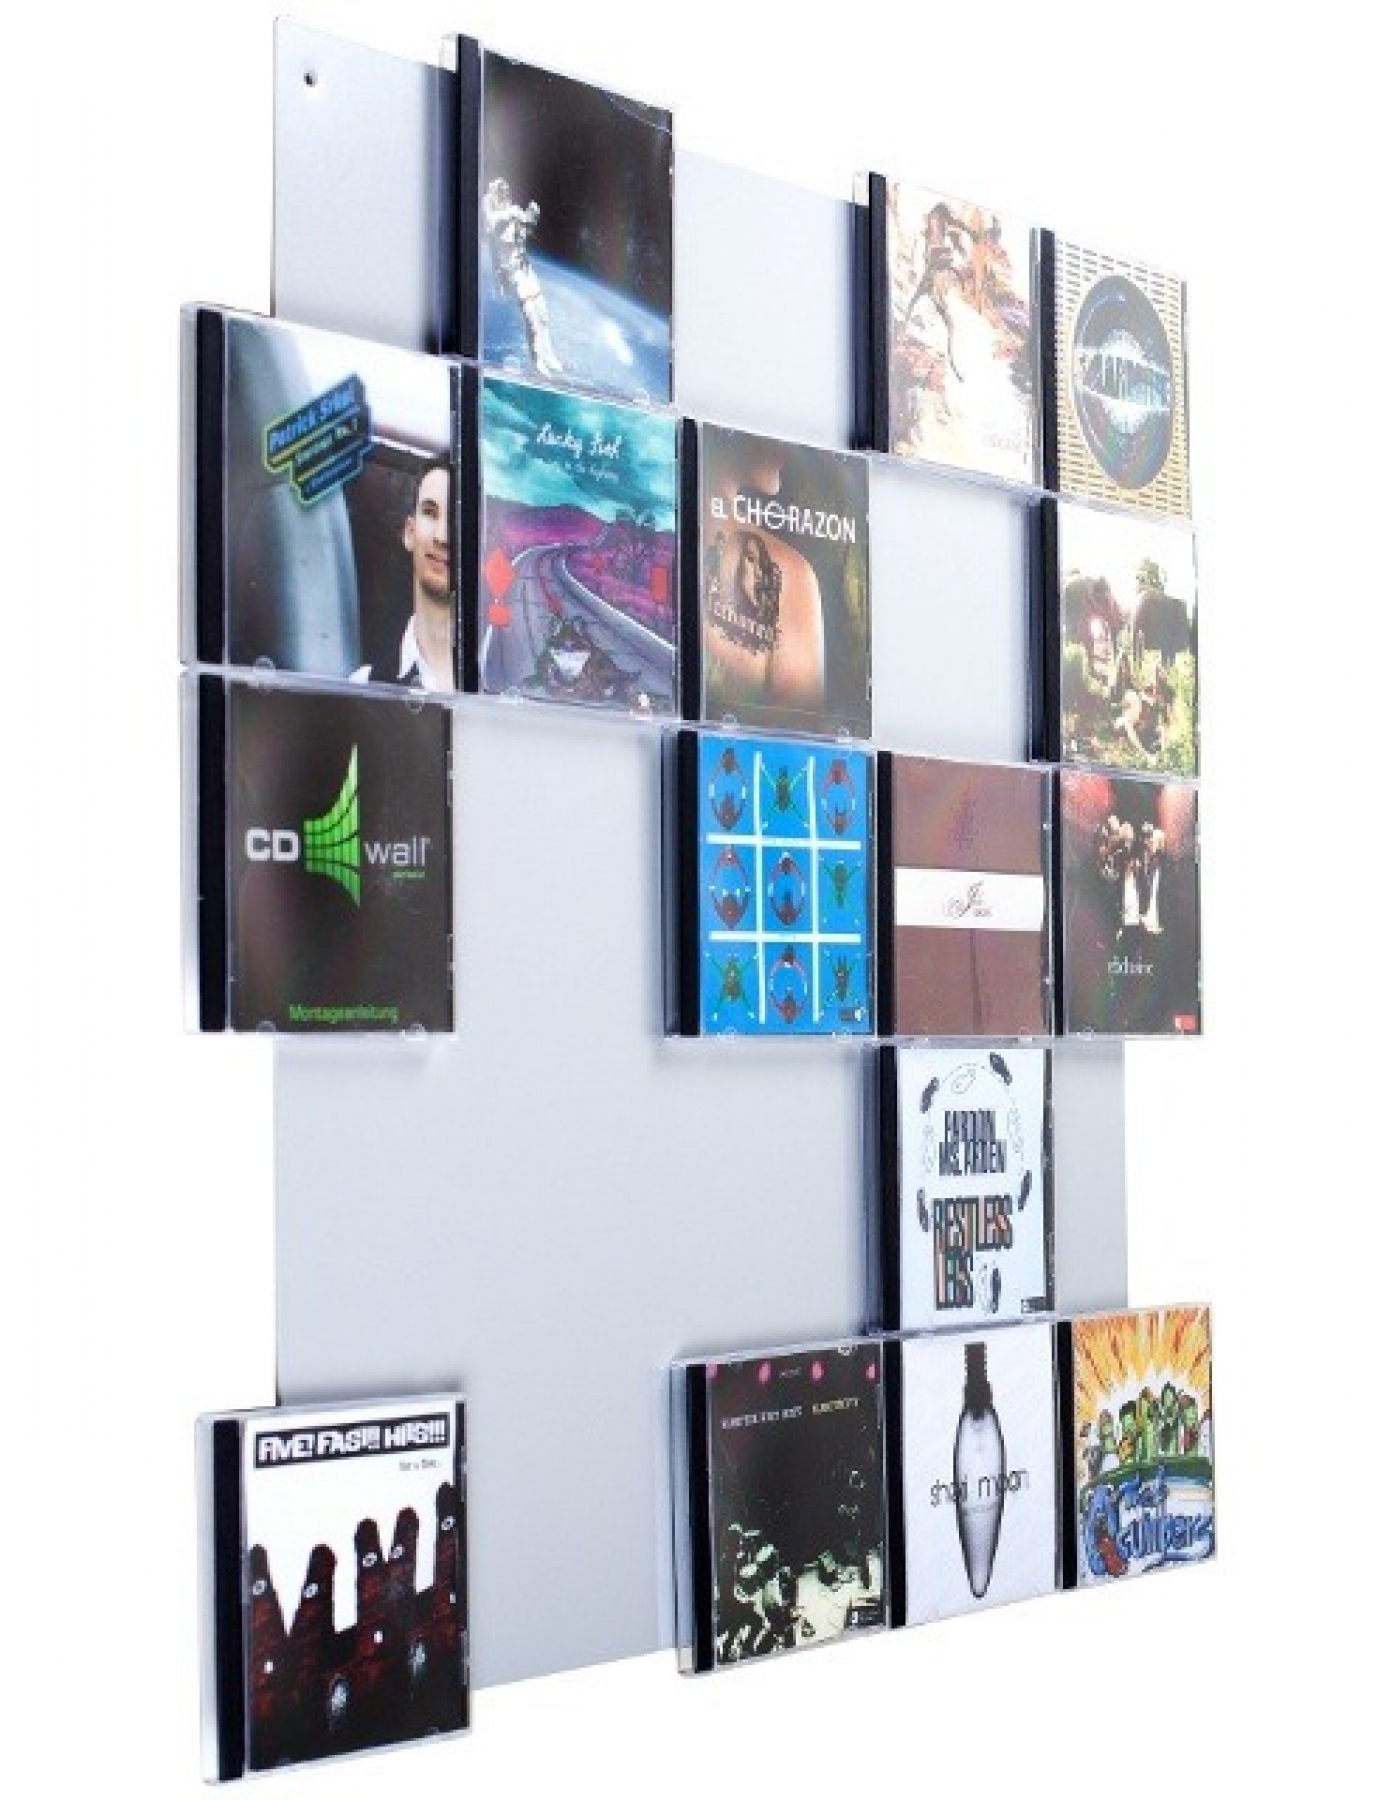 The picture shows our CD wall shelf CD Wall5x5 in whitealu